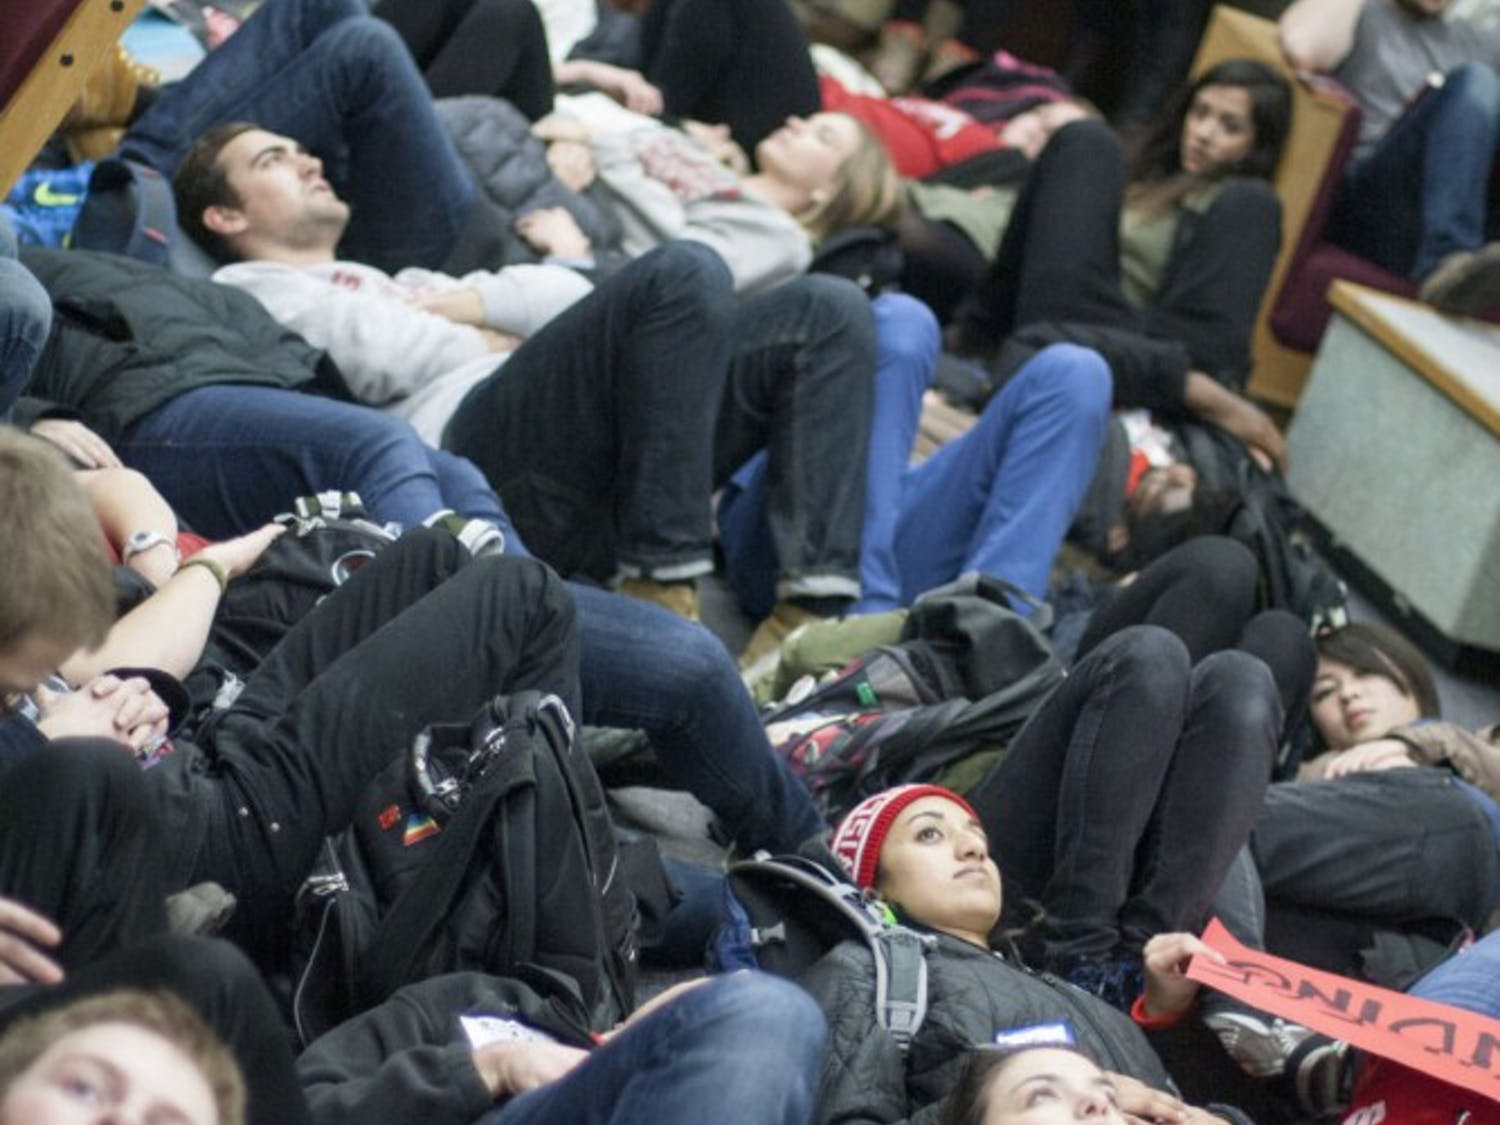 Protesters lay on the ground around students studying for finals for 20 minutes before concluding the demonstration outside the doors of the library.